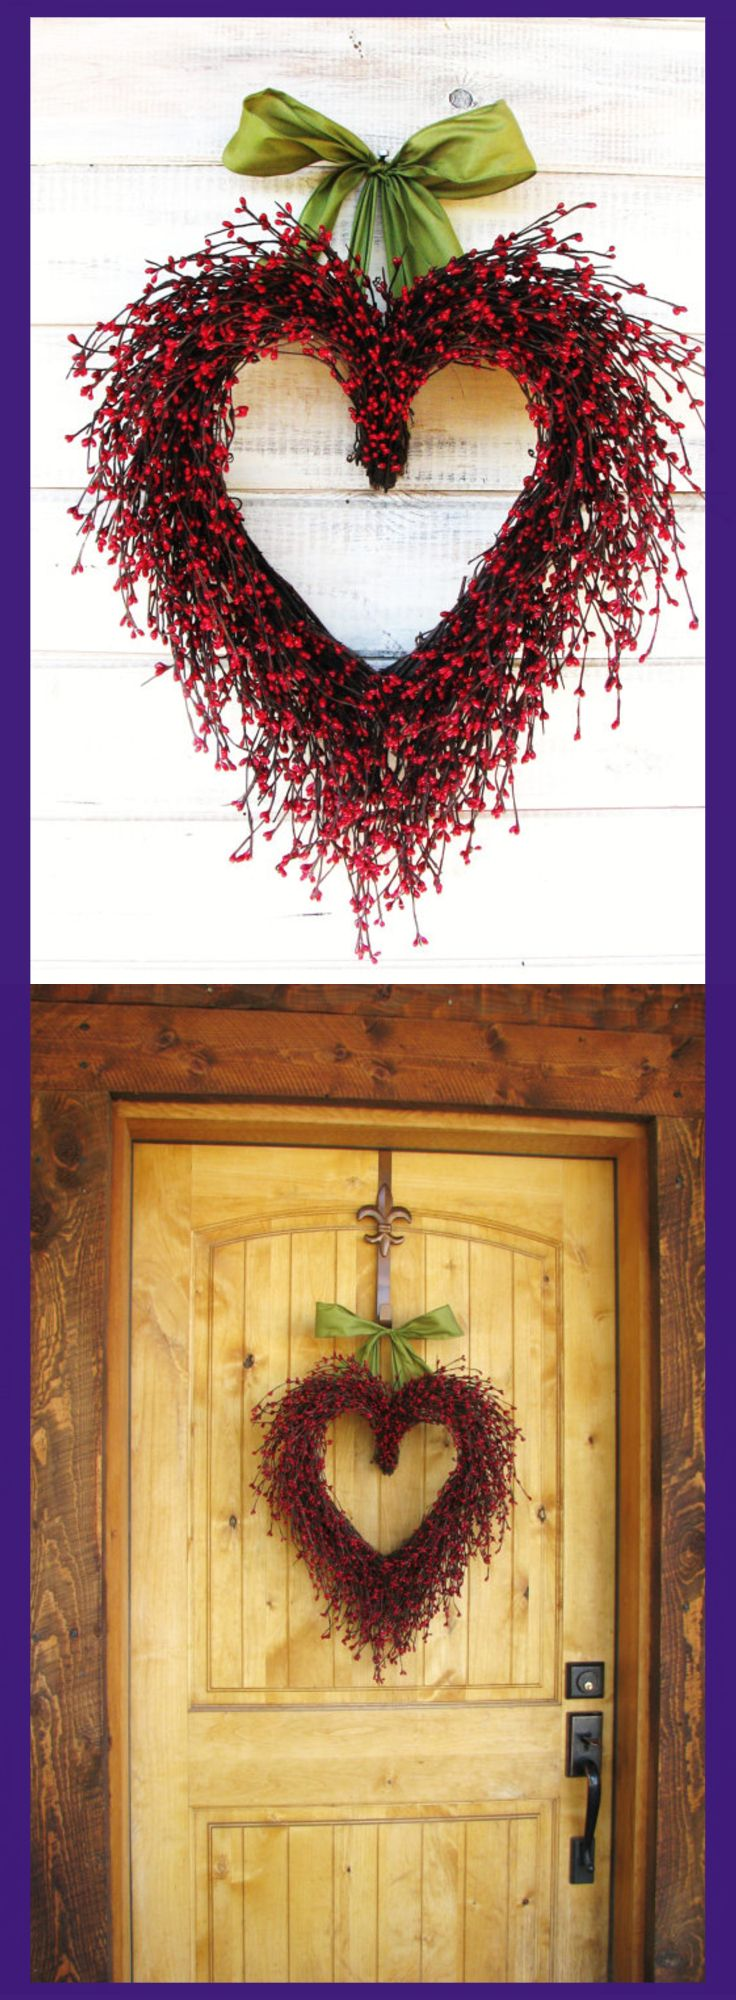 What a pretty hand made Valentine Wreath. It will look great on a door or any wall in a home. Valentine Wreath-Wedding Decor-Wedding Heart Wreath-Mothers Day Gift-Red Heart Wreath-Weddings-Gift for Mom-Say I LOVE YOU-Wedding Gift #valentinesday #affiliate #heartwreath